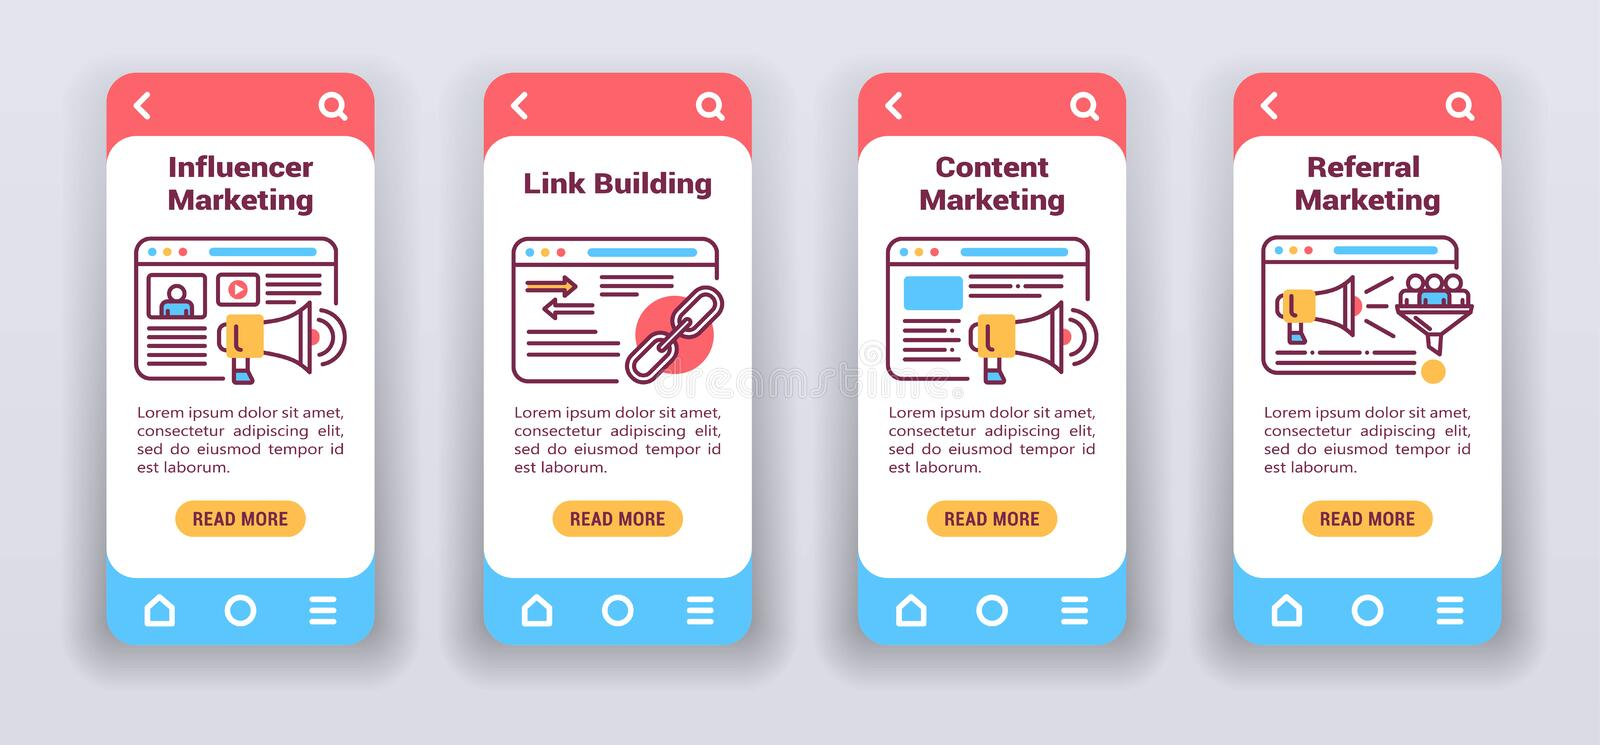 Marketing channels on mobile app onboarding screens. Flat icons, influencer, link building, content, referral marketing vector illustration